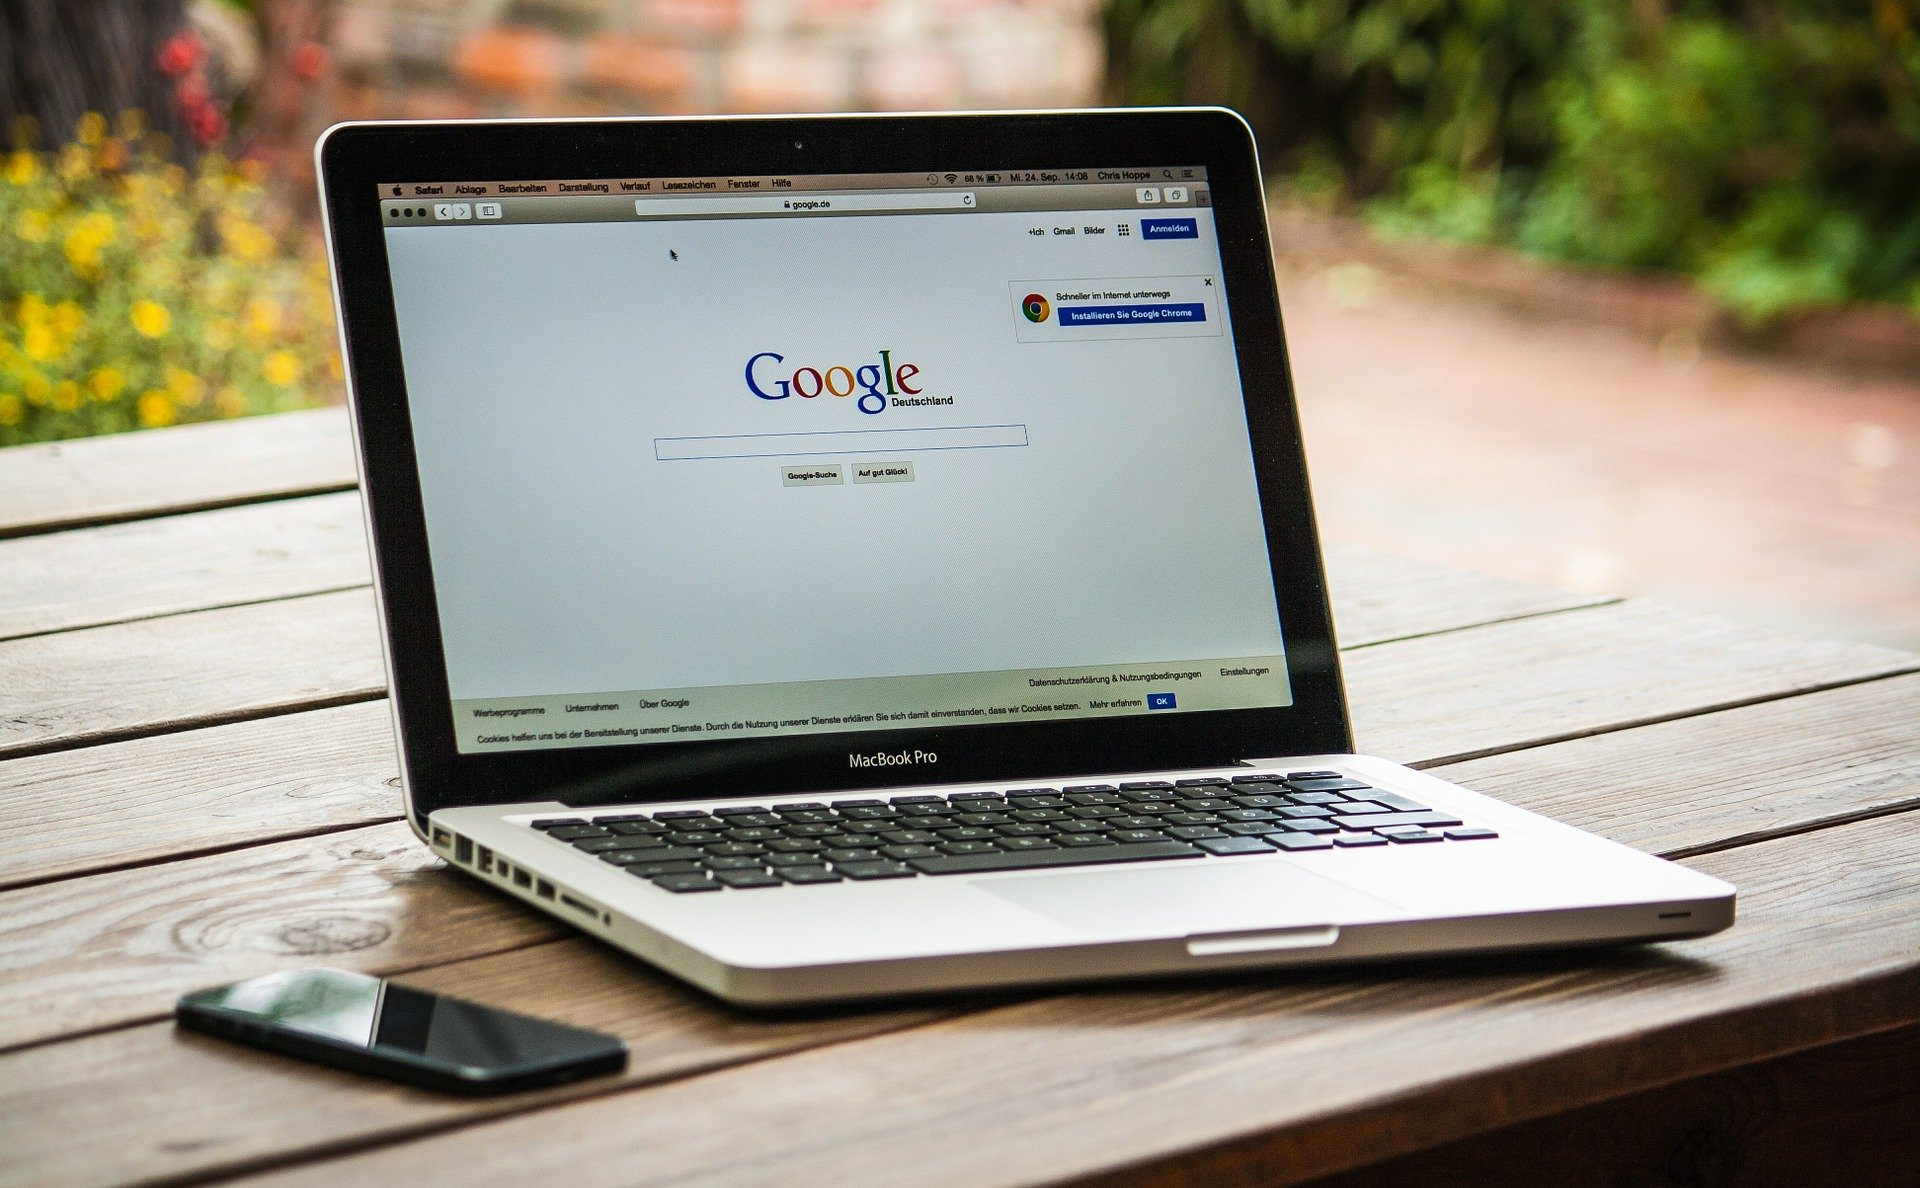 Google Search on Silver MacBook Air Located on Light Wooden Table